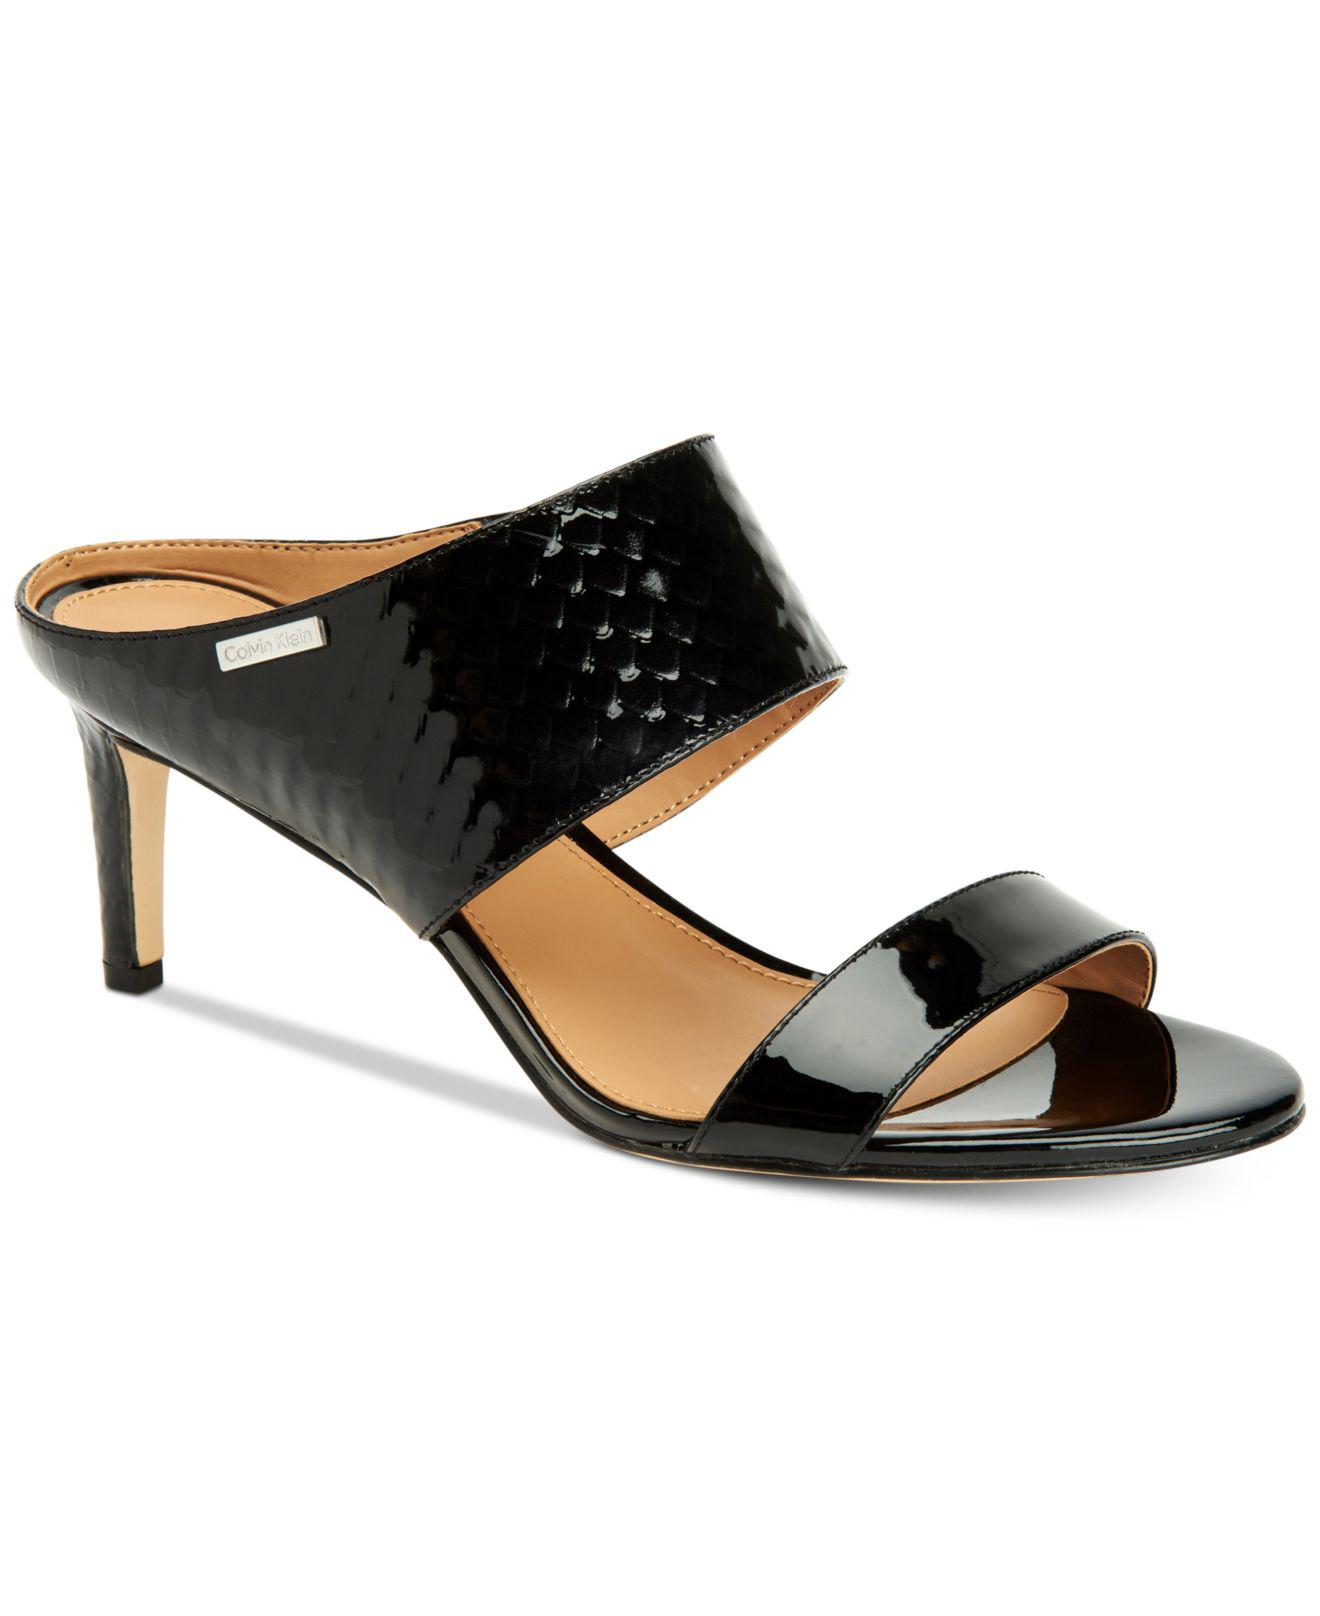 996a4db0cd1 Lyst - Calvin Klein Women s Cecily Wide-strap Sandals in Black ...